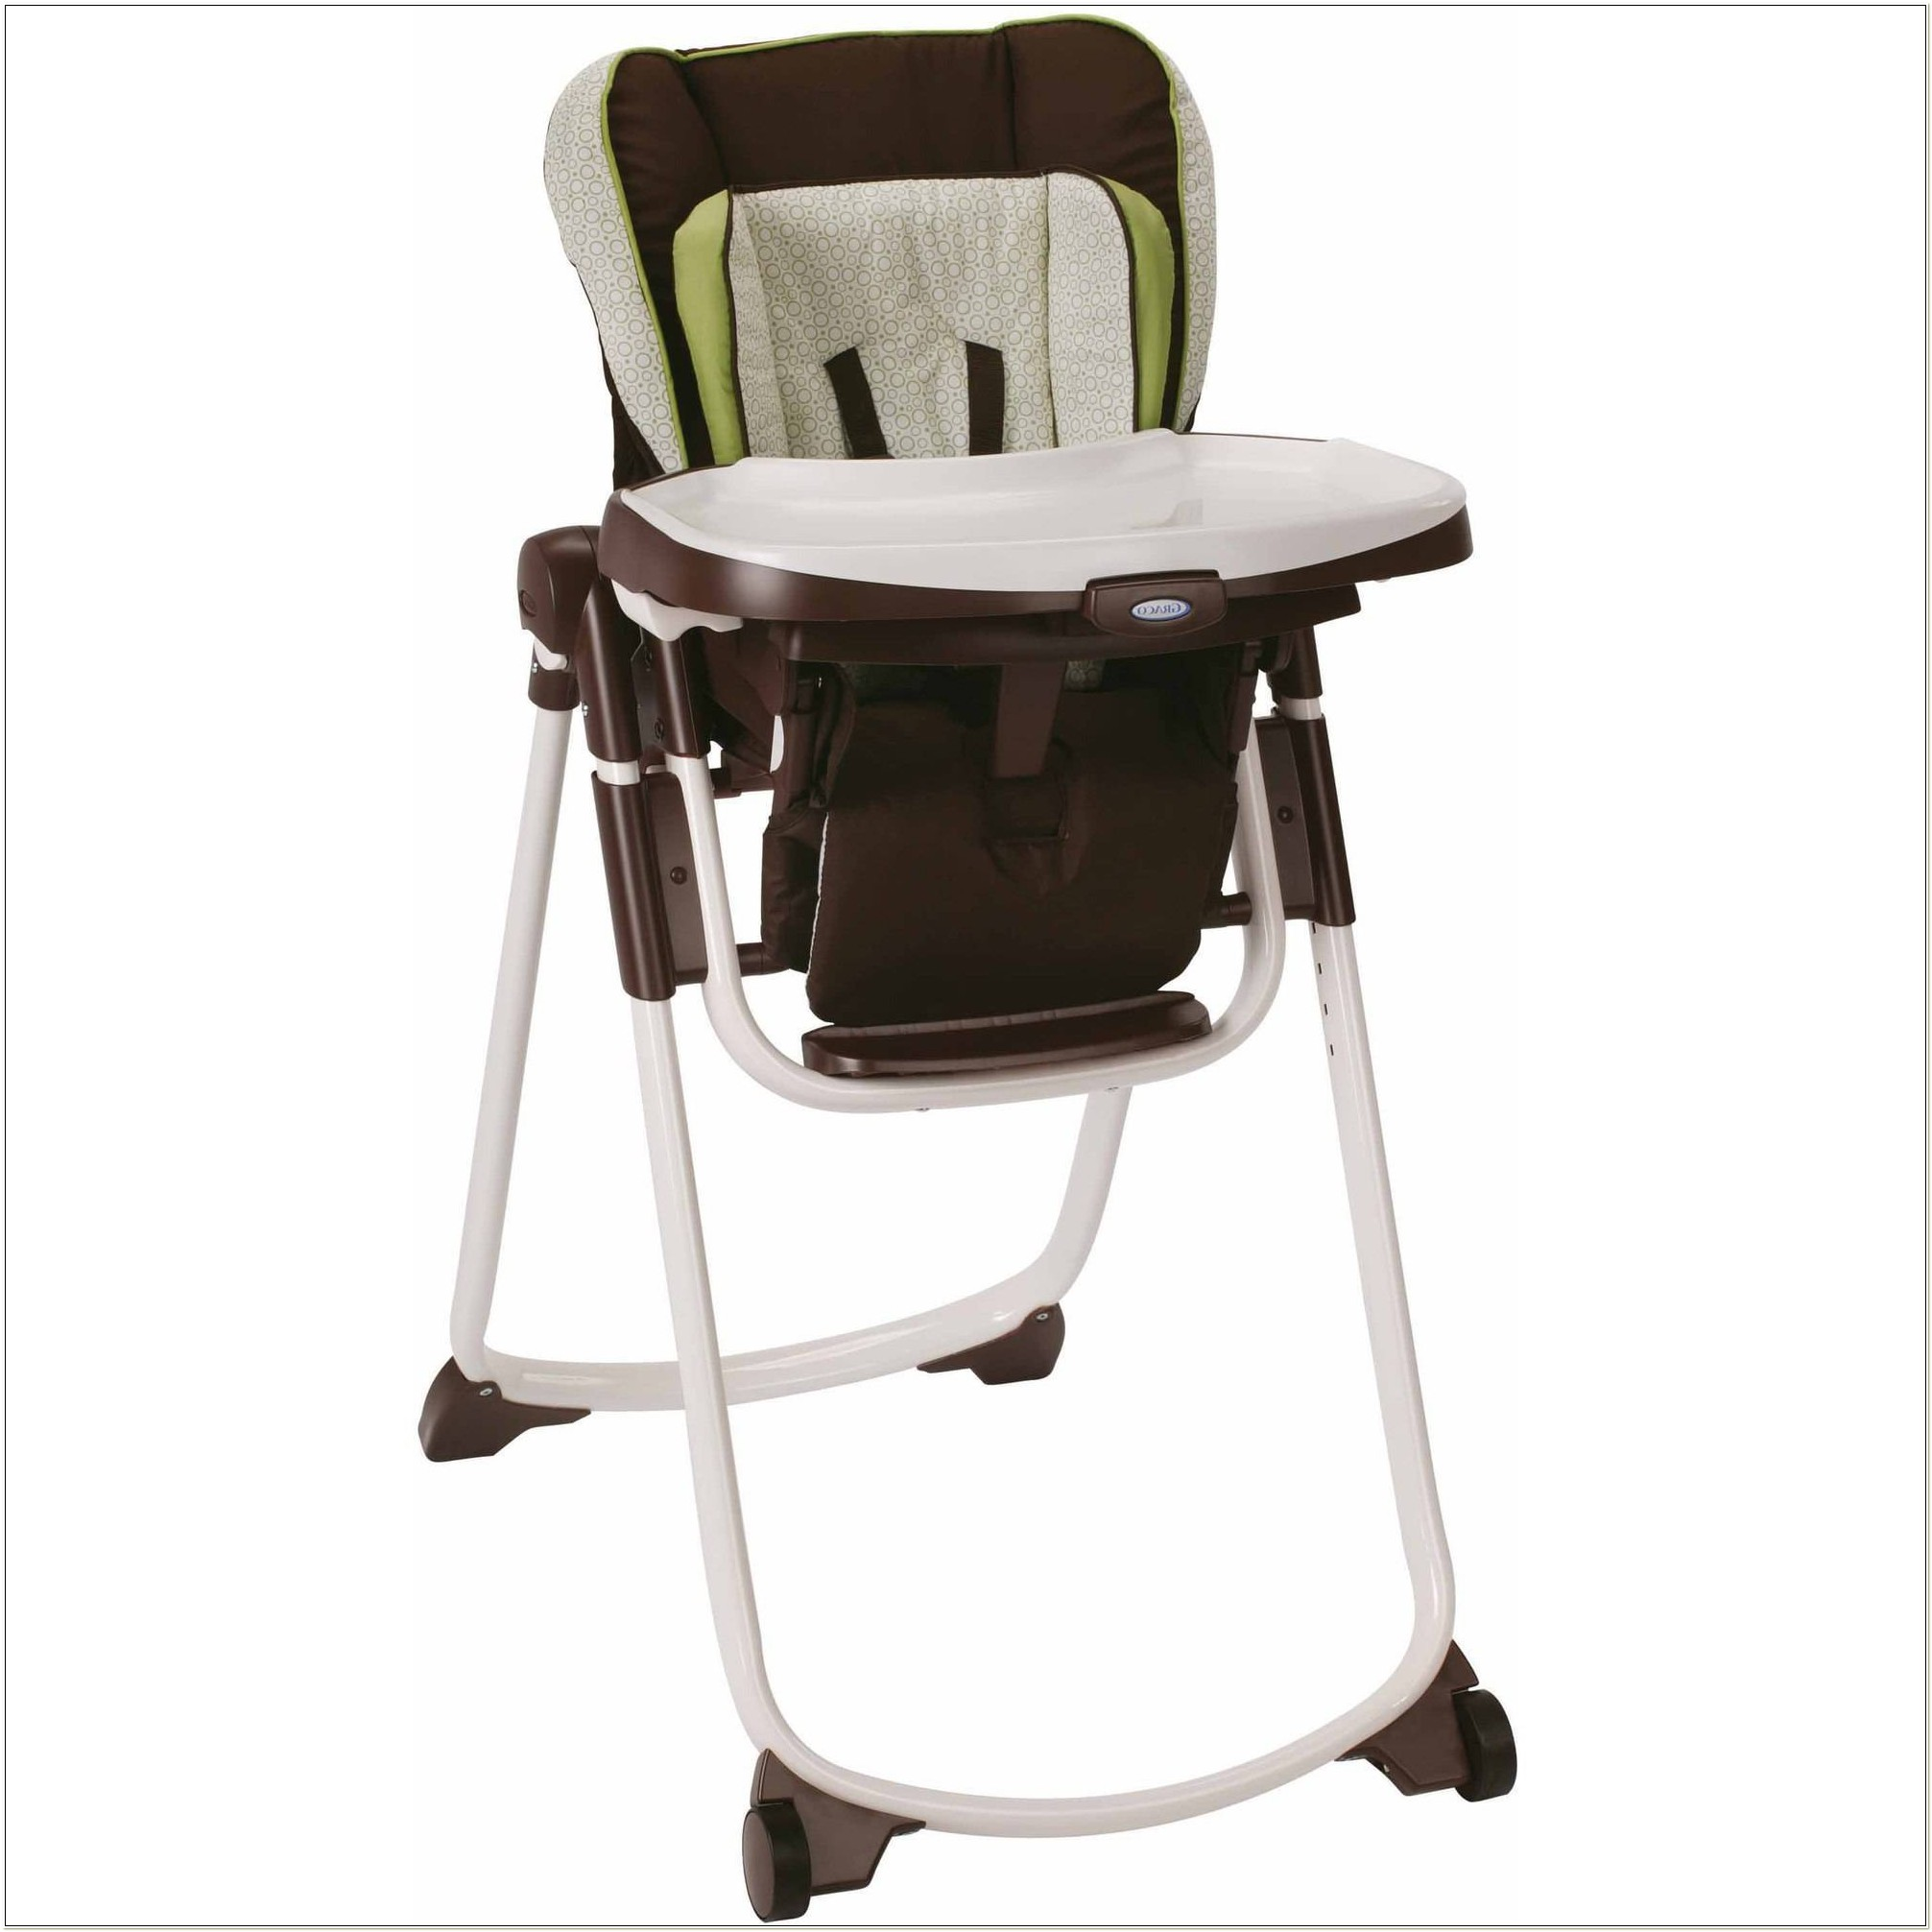 Graco High Chair Recall 2014